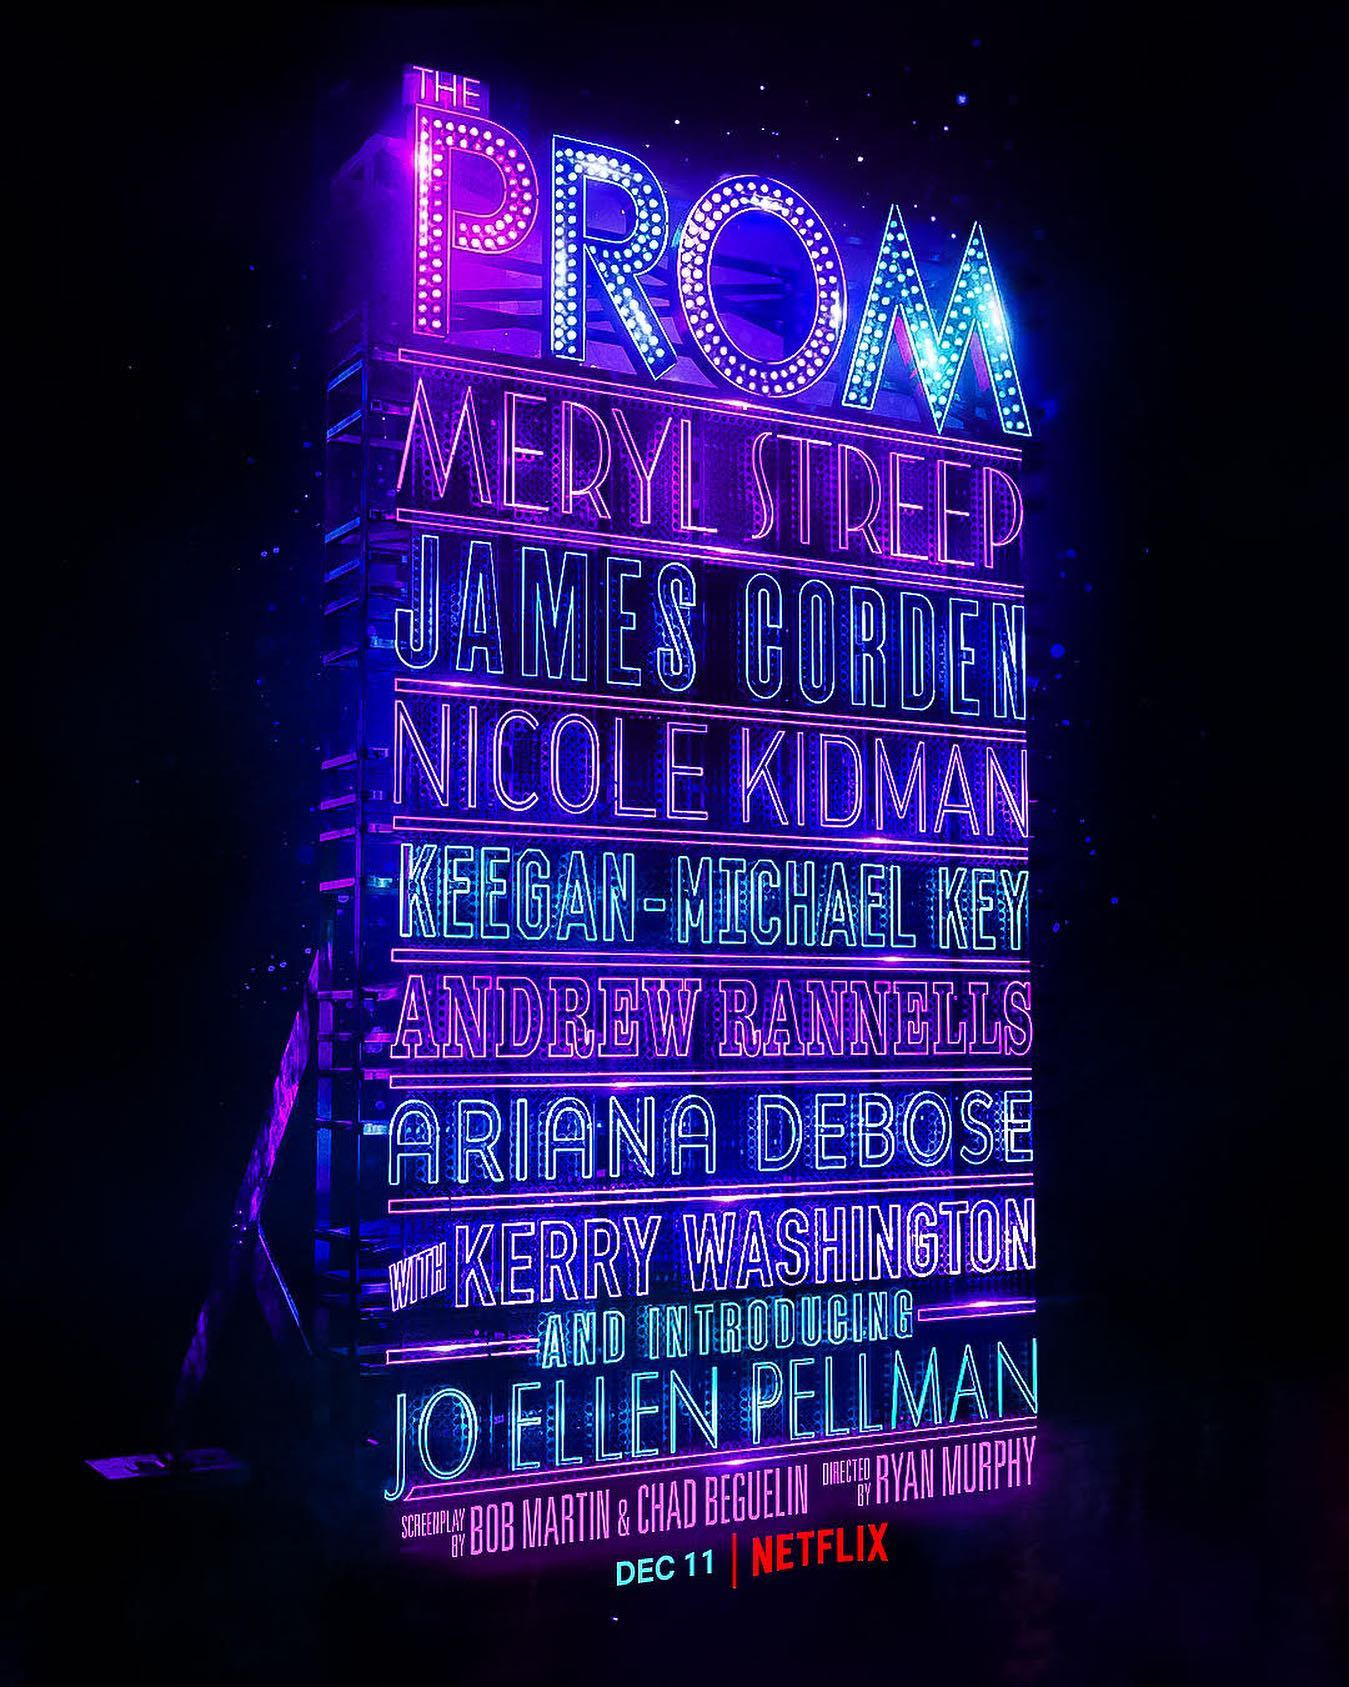 Nicole Kidman, Meryl Streep, Chad Beguelin, James Corden, Bob Martin, Ryan Murphy, Andrew Rannells, Kerry Washington, Jo Ellen Pellman, Keegan-Michael Key, and Ariana DeBose in The Prom (2020)